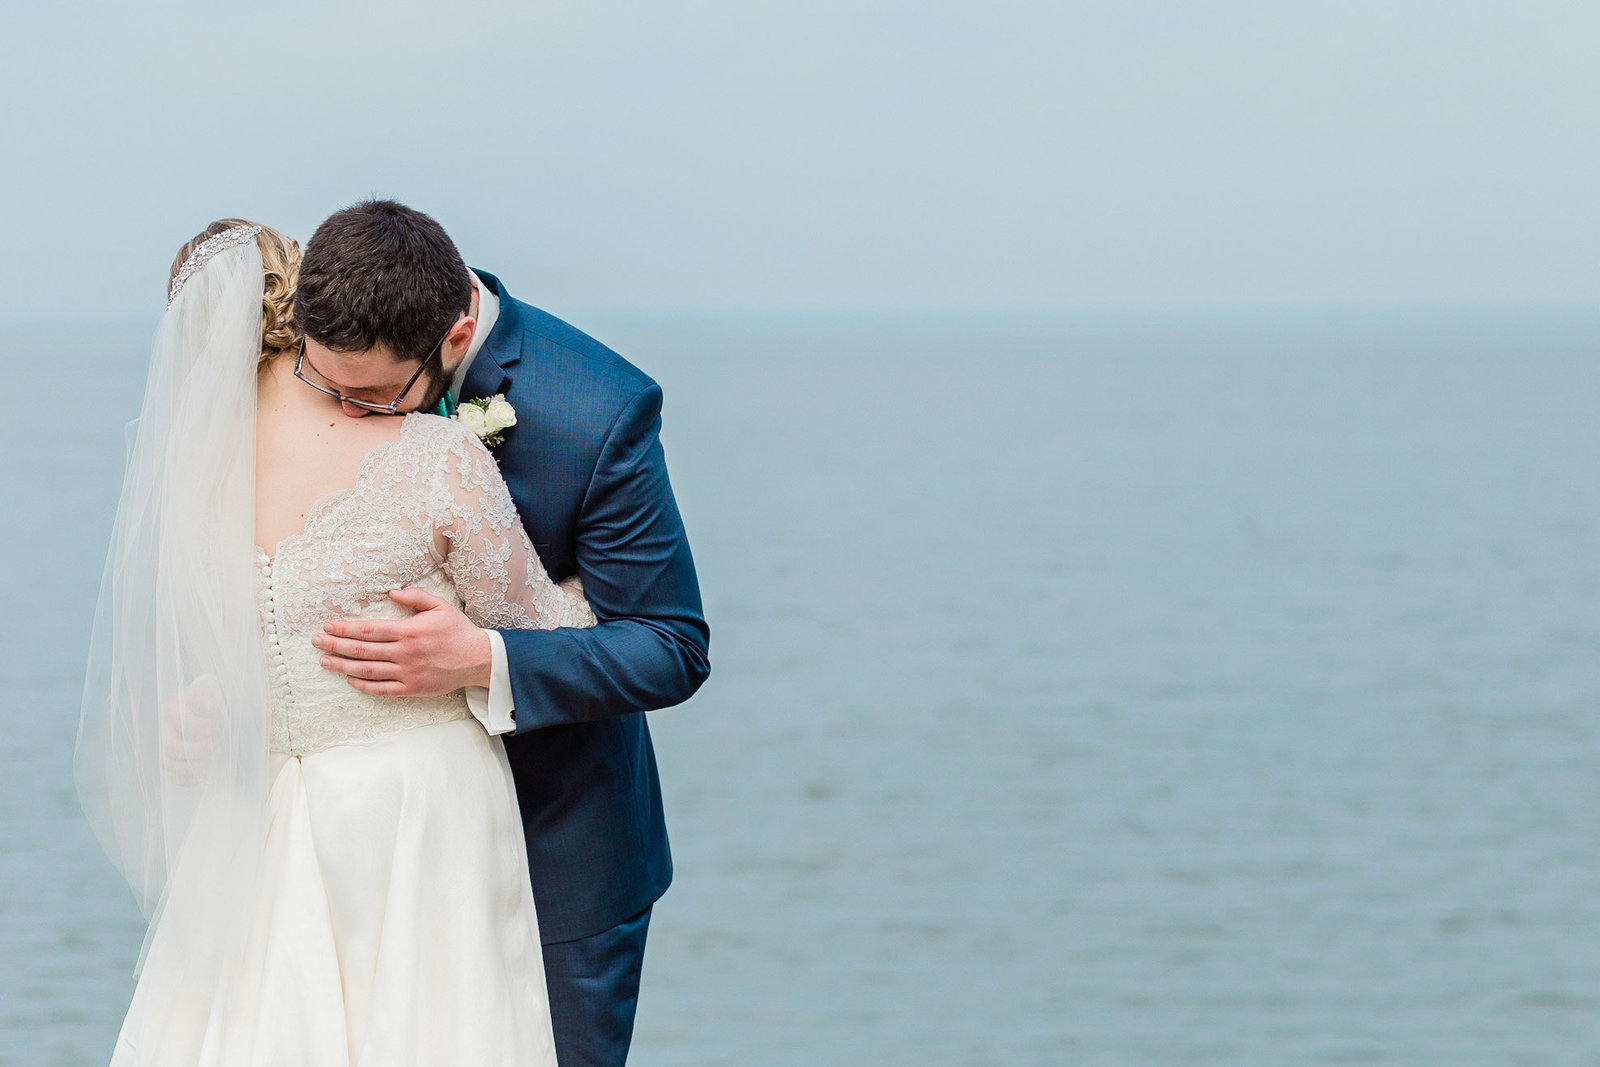 Bride and groom hug tenderly, with ocean behind them. Celebrations at the Bay Maryland